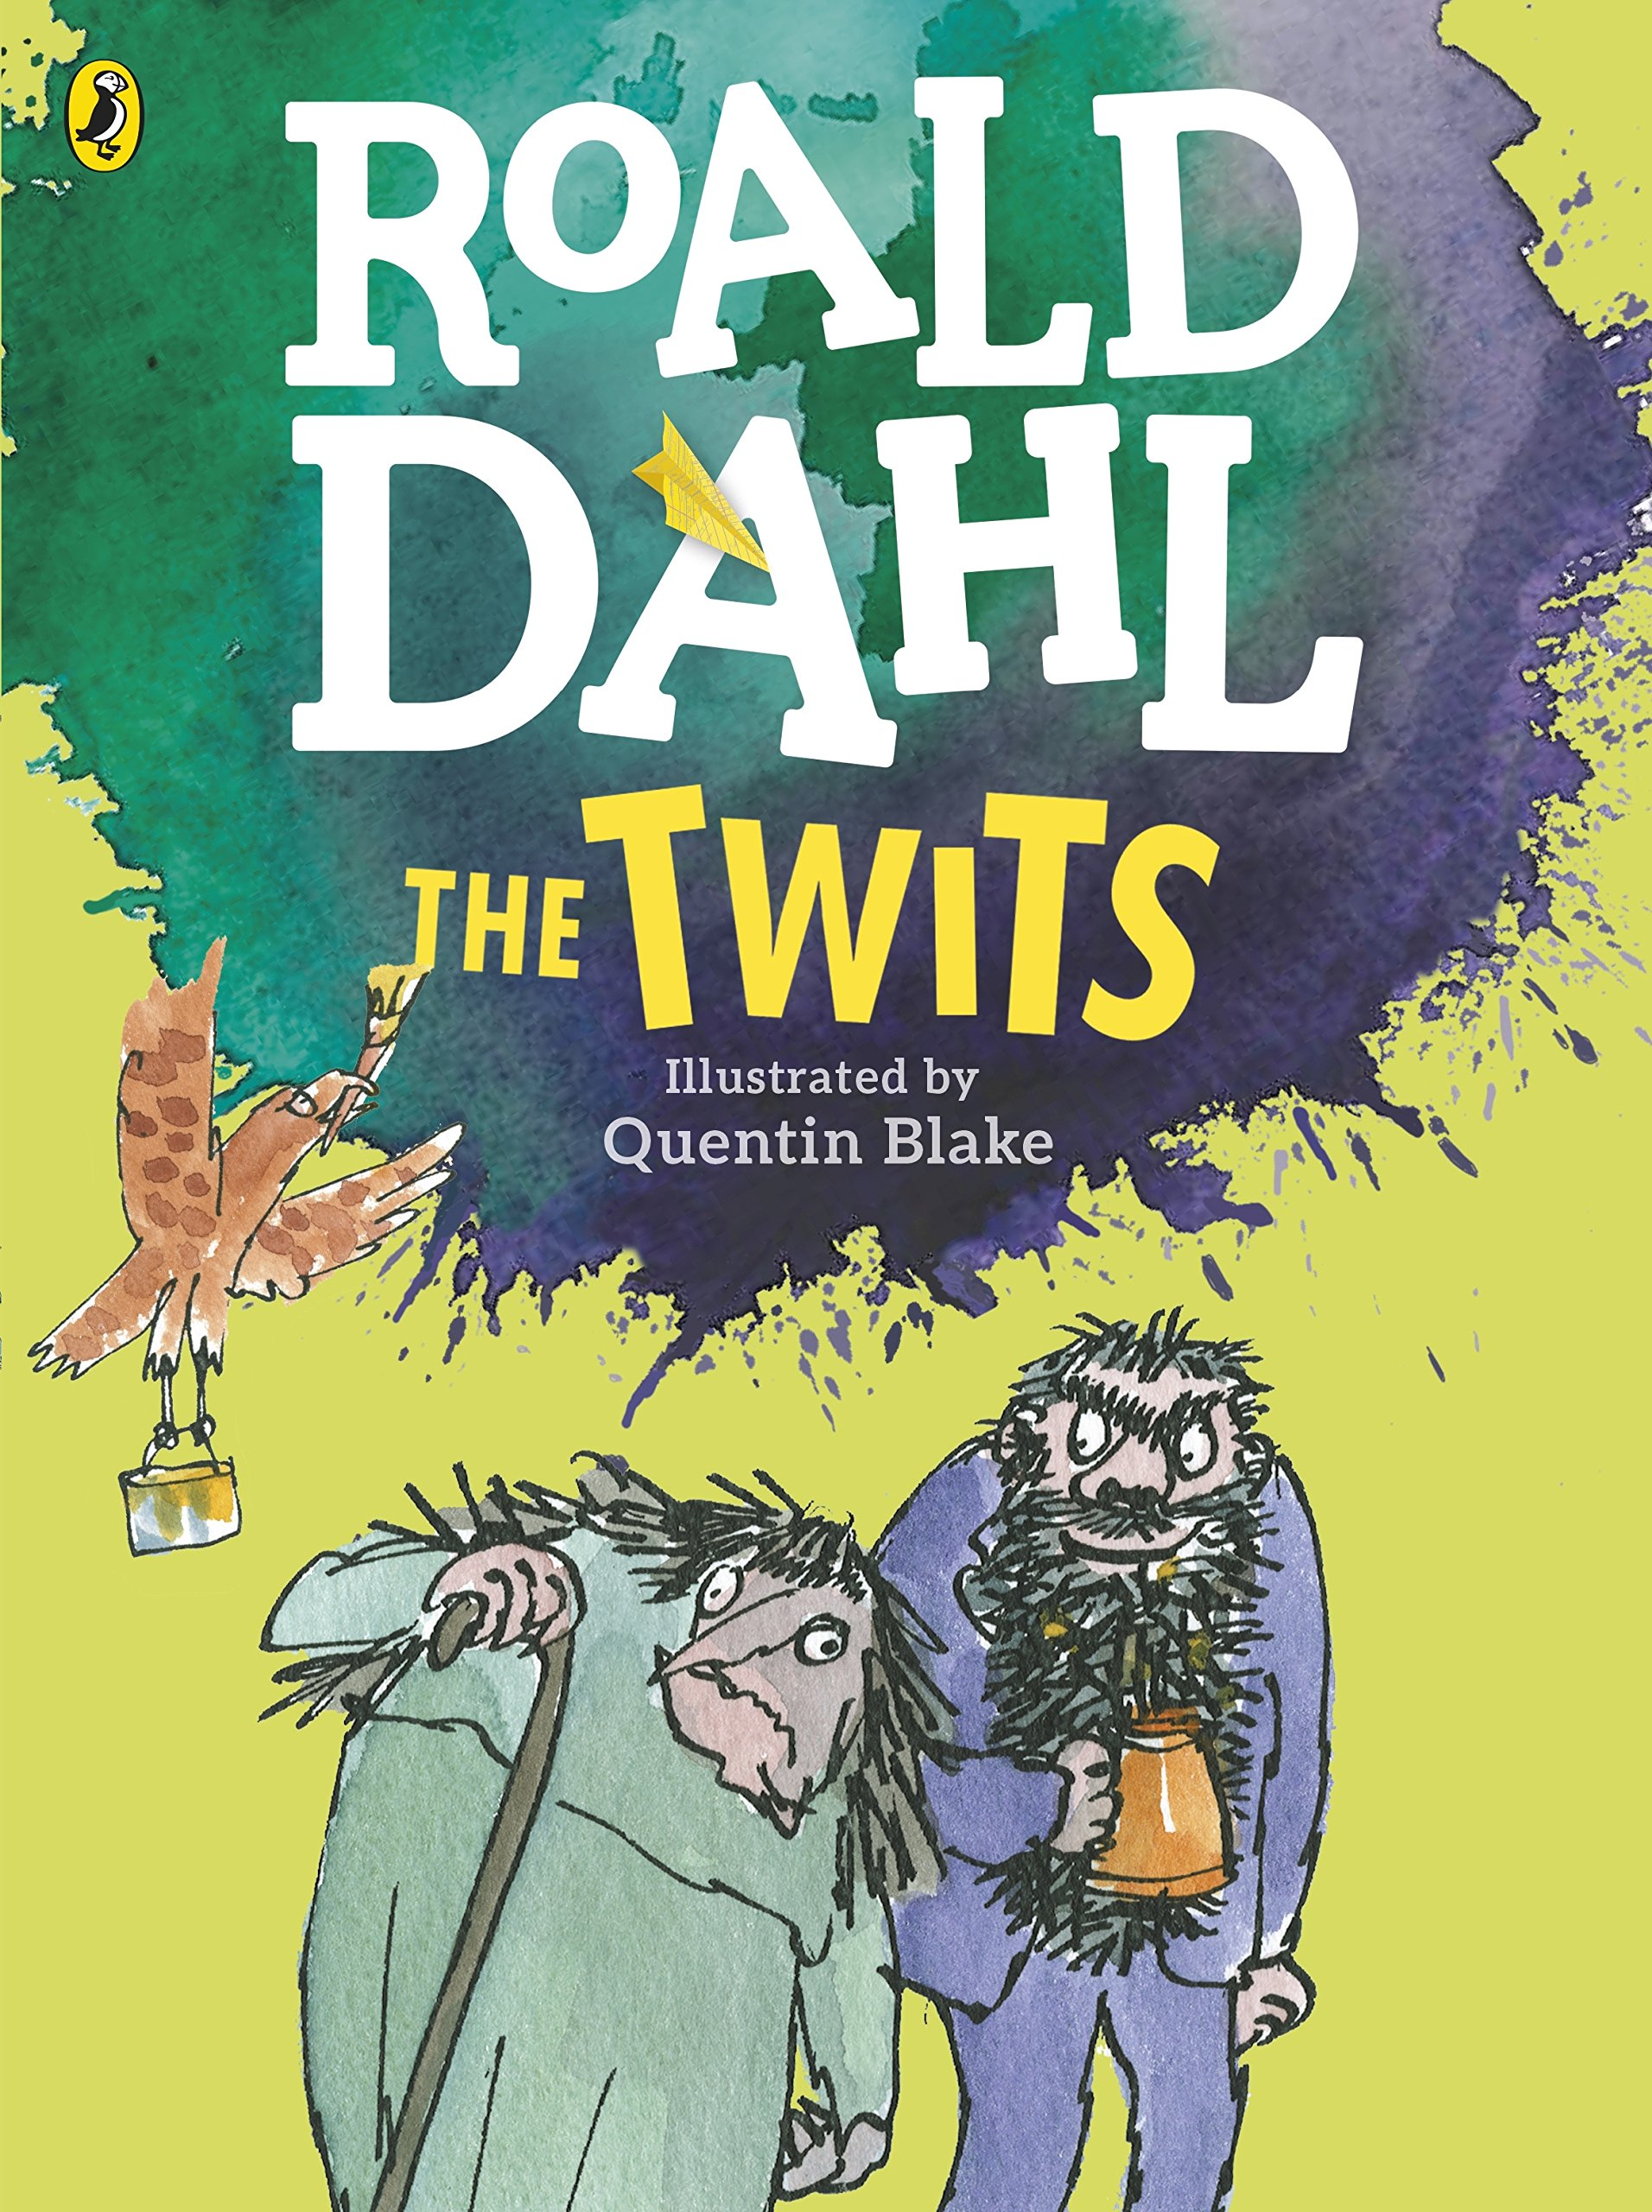 The Twits (Colour Edition): Amazon.co.uk: Dahl, Roald, Blake, Quentin:  9780141369341: Books